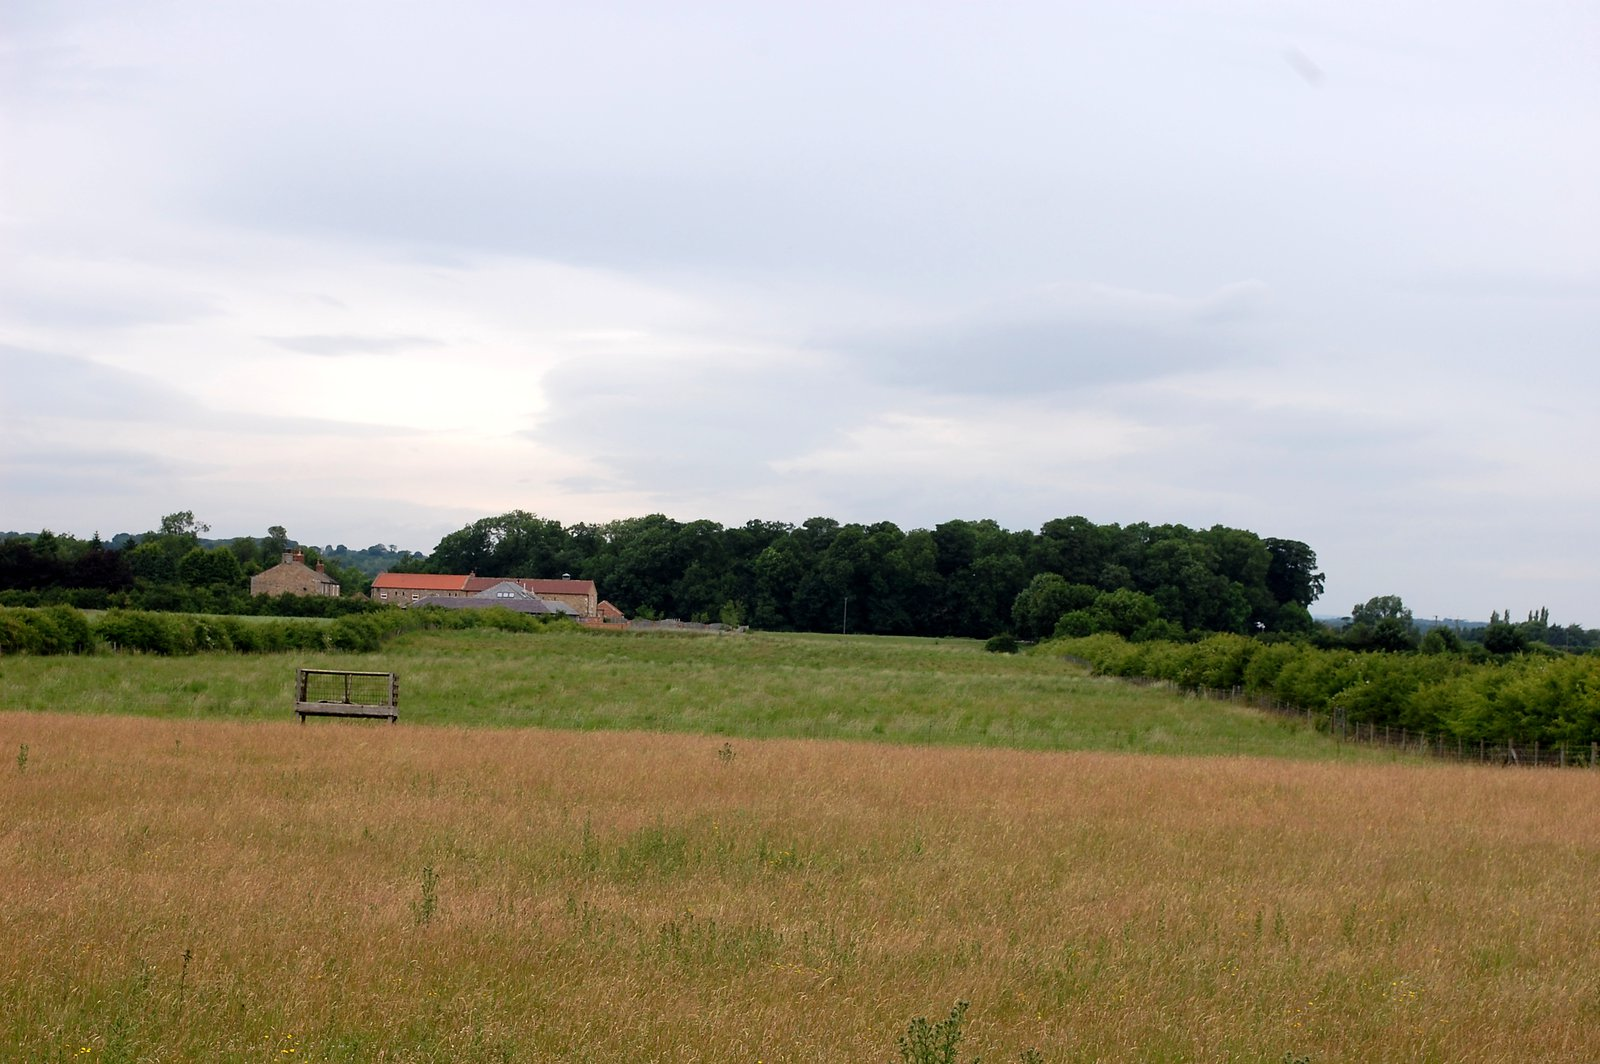 View From Central Henge To Northern Henge